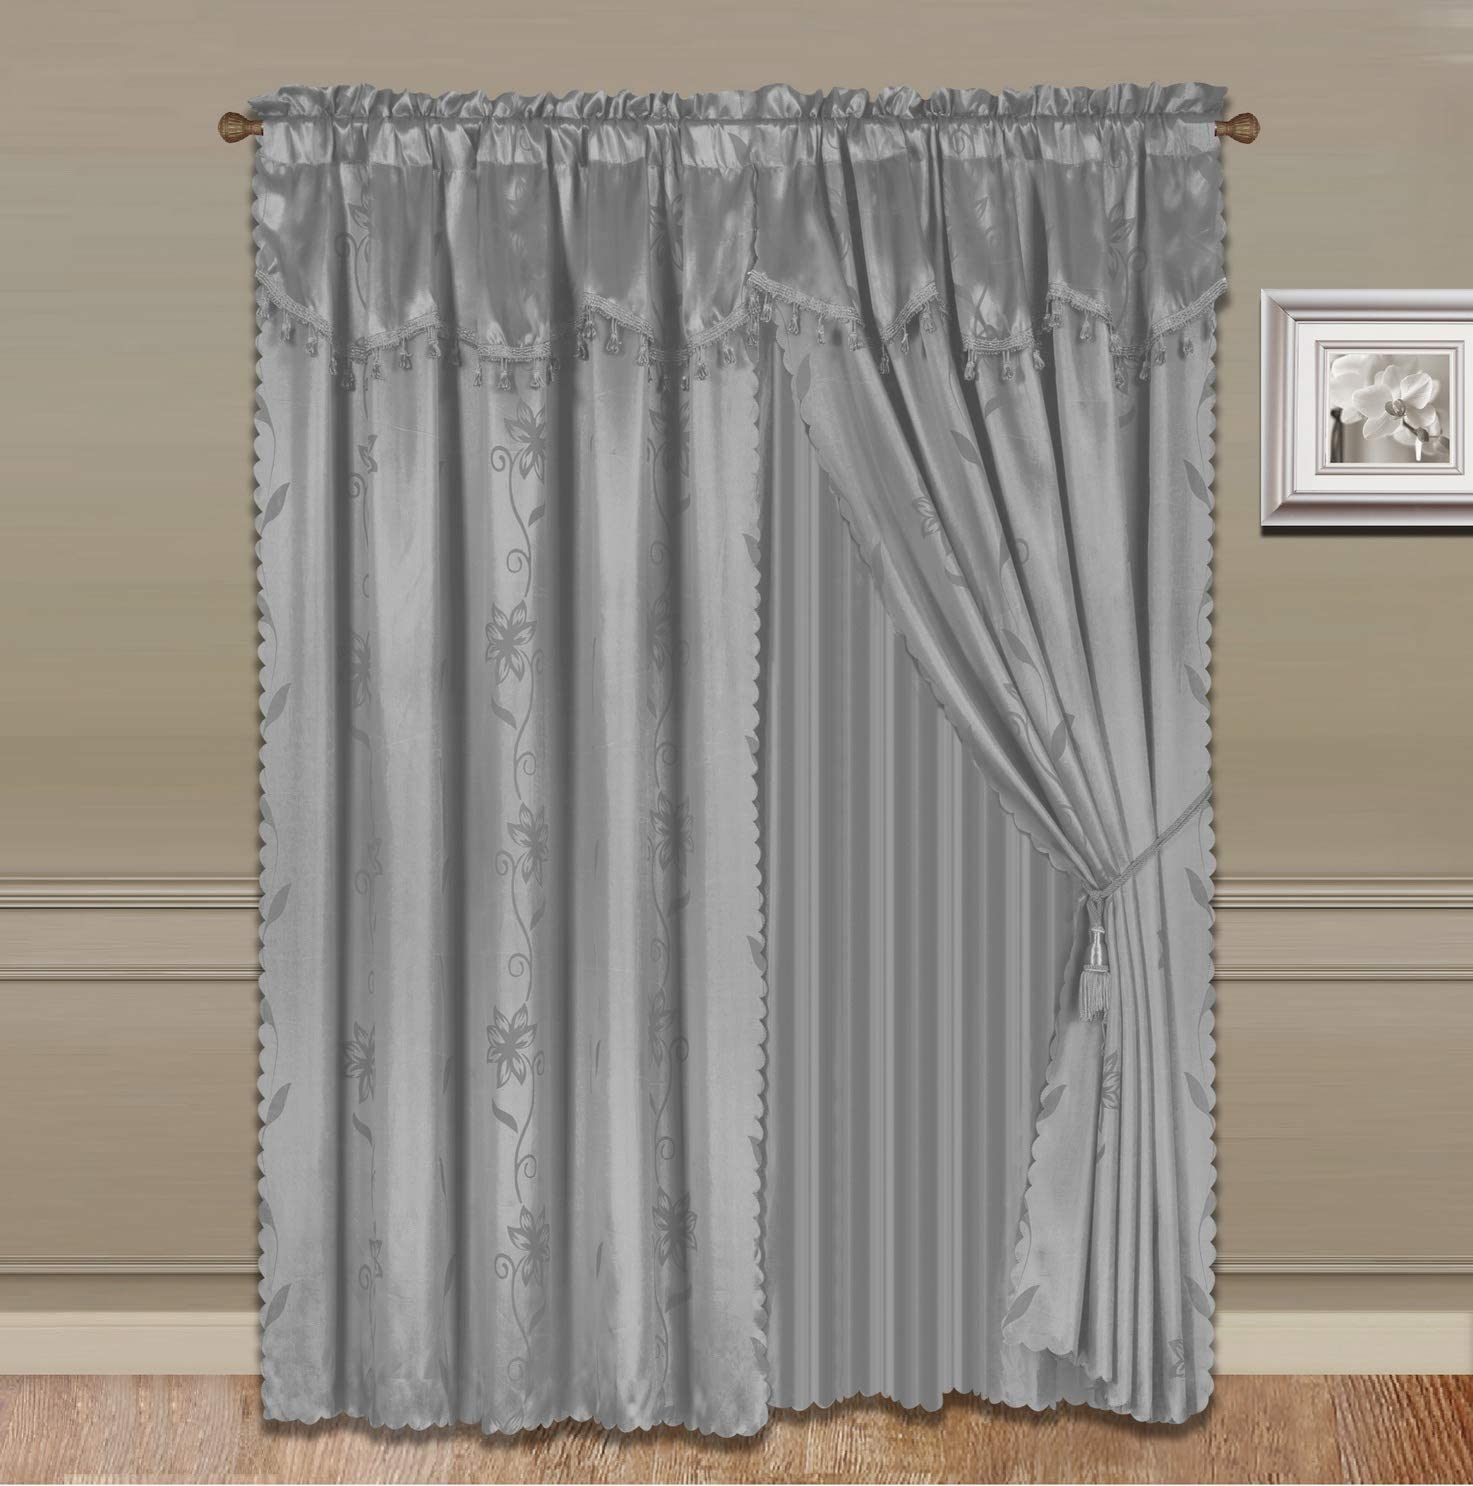 """GorgeousHomeLinen (Nada) One Solid Silver Grey Elegant Rod Pocket Window Curtain Panel Floral Printed Treatment Drape with Matching tieback in 63"""" 84"""" 95"""" 108"""" Length (84"""" Standard)"""